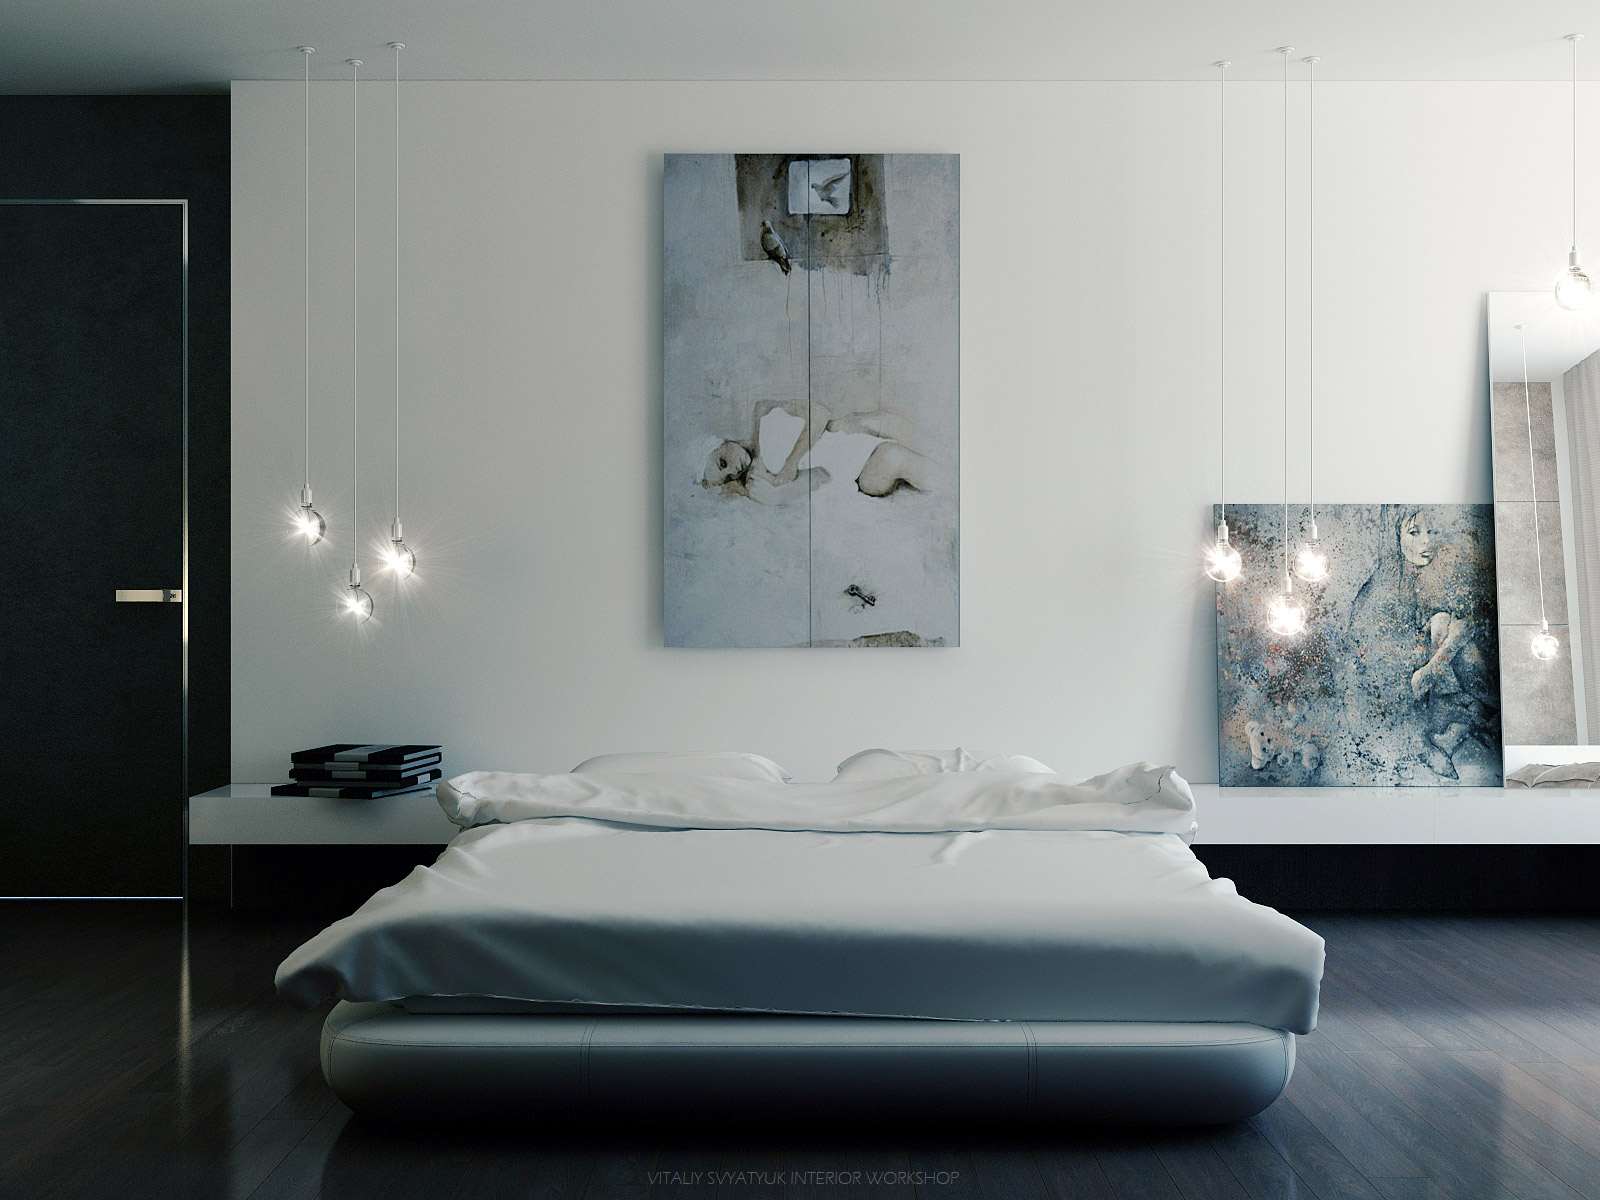 Wall Art Bedroom Modern : Modern art vitaly svyatyuk cool pallete bedroom